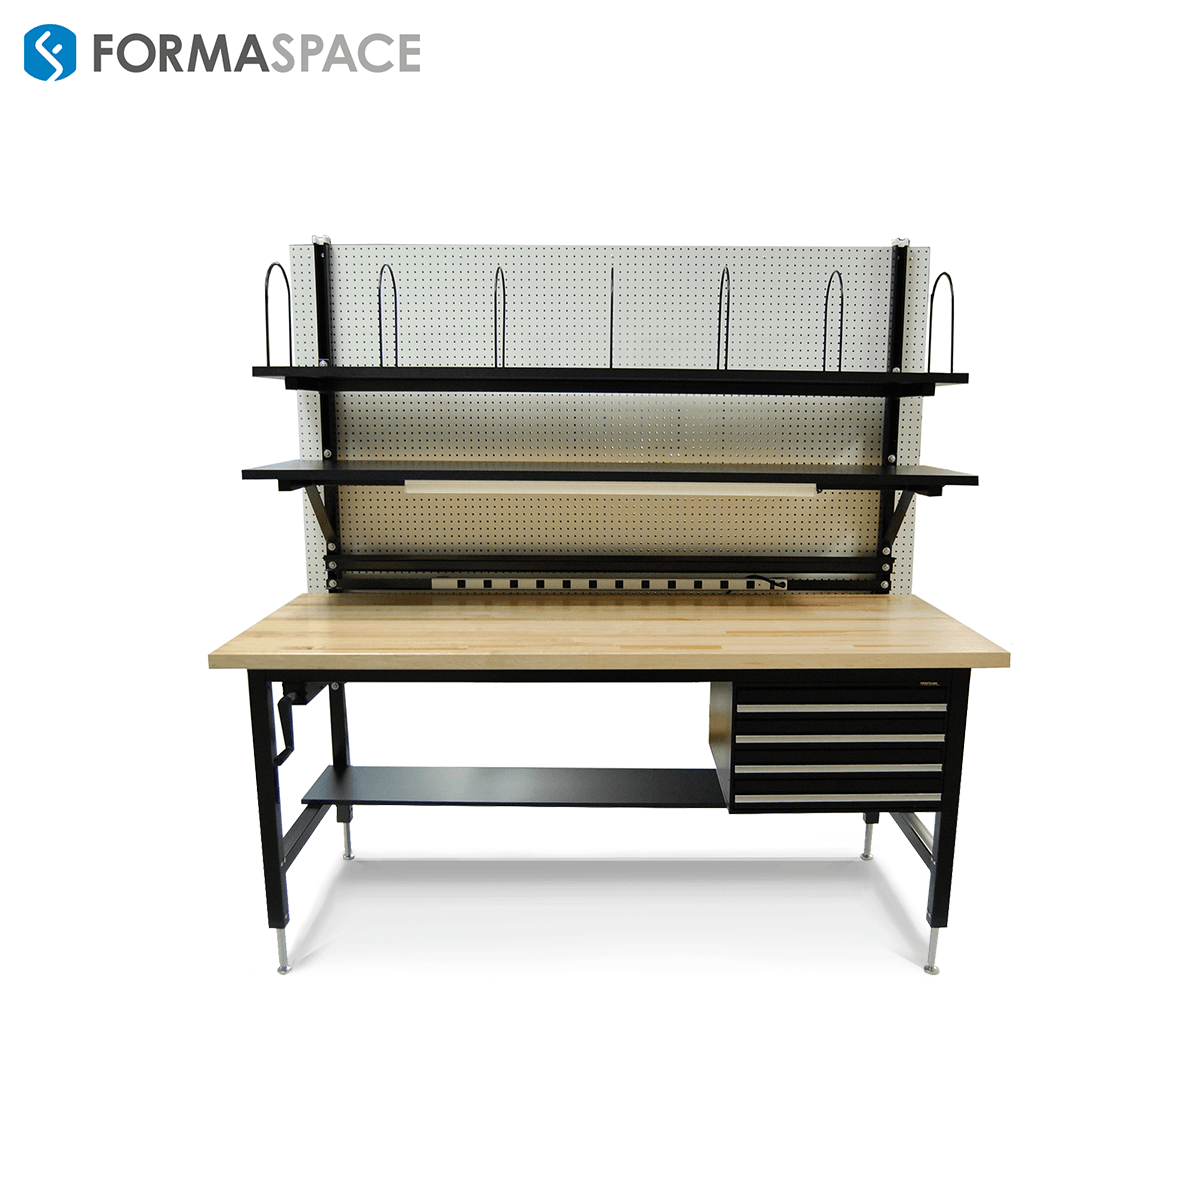 Customized Benchmarx for Industrial Packing Station